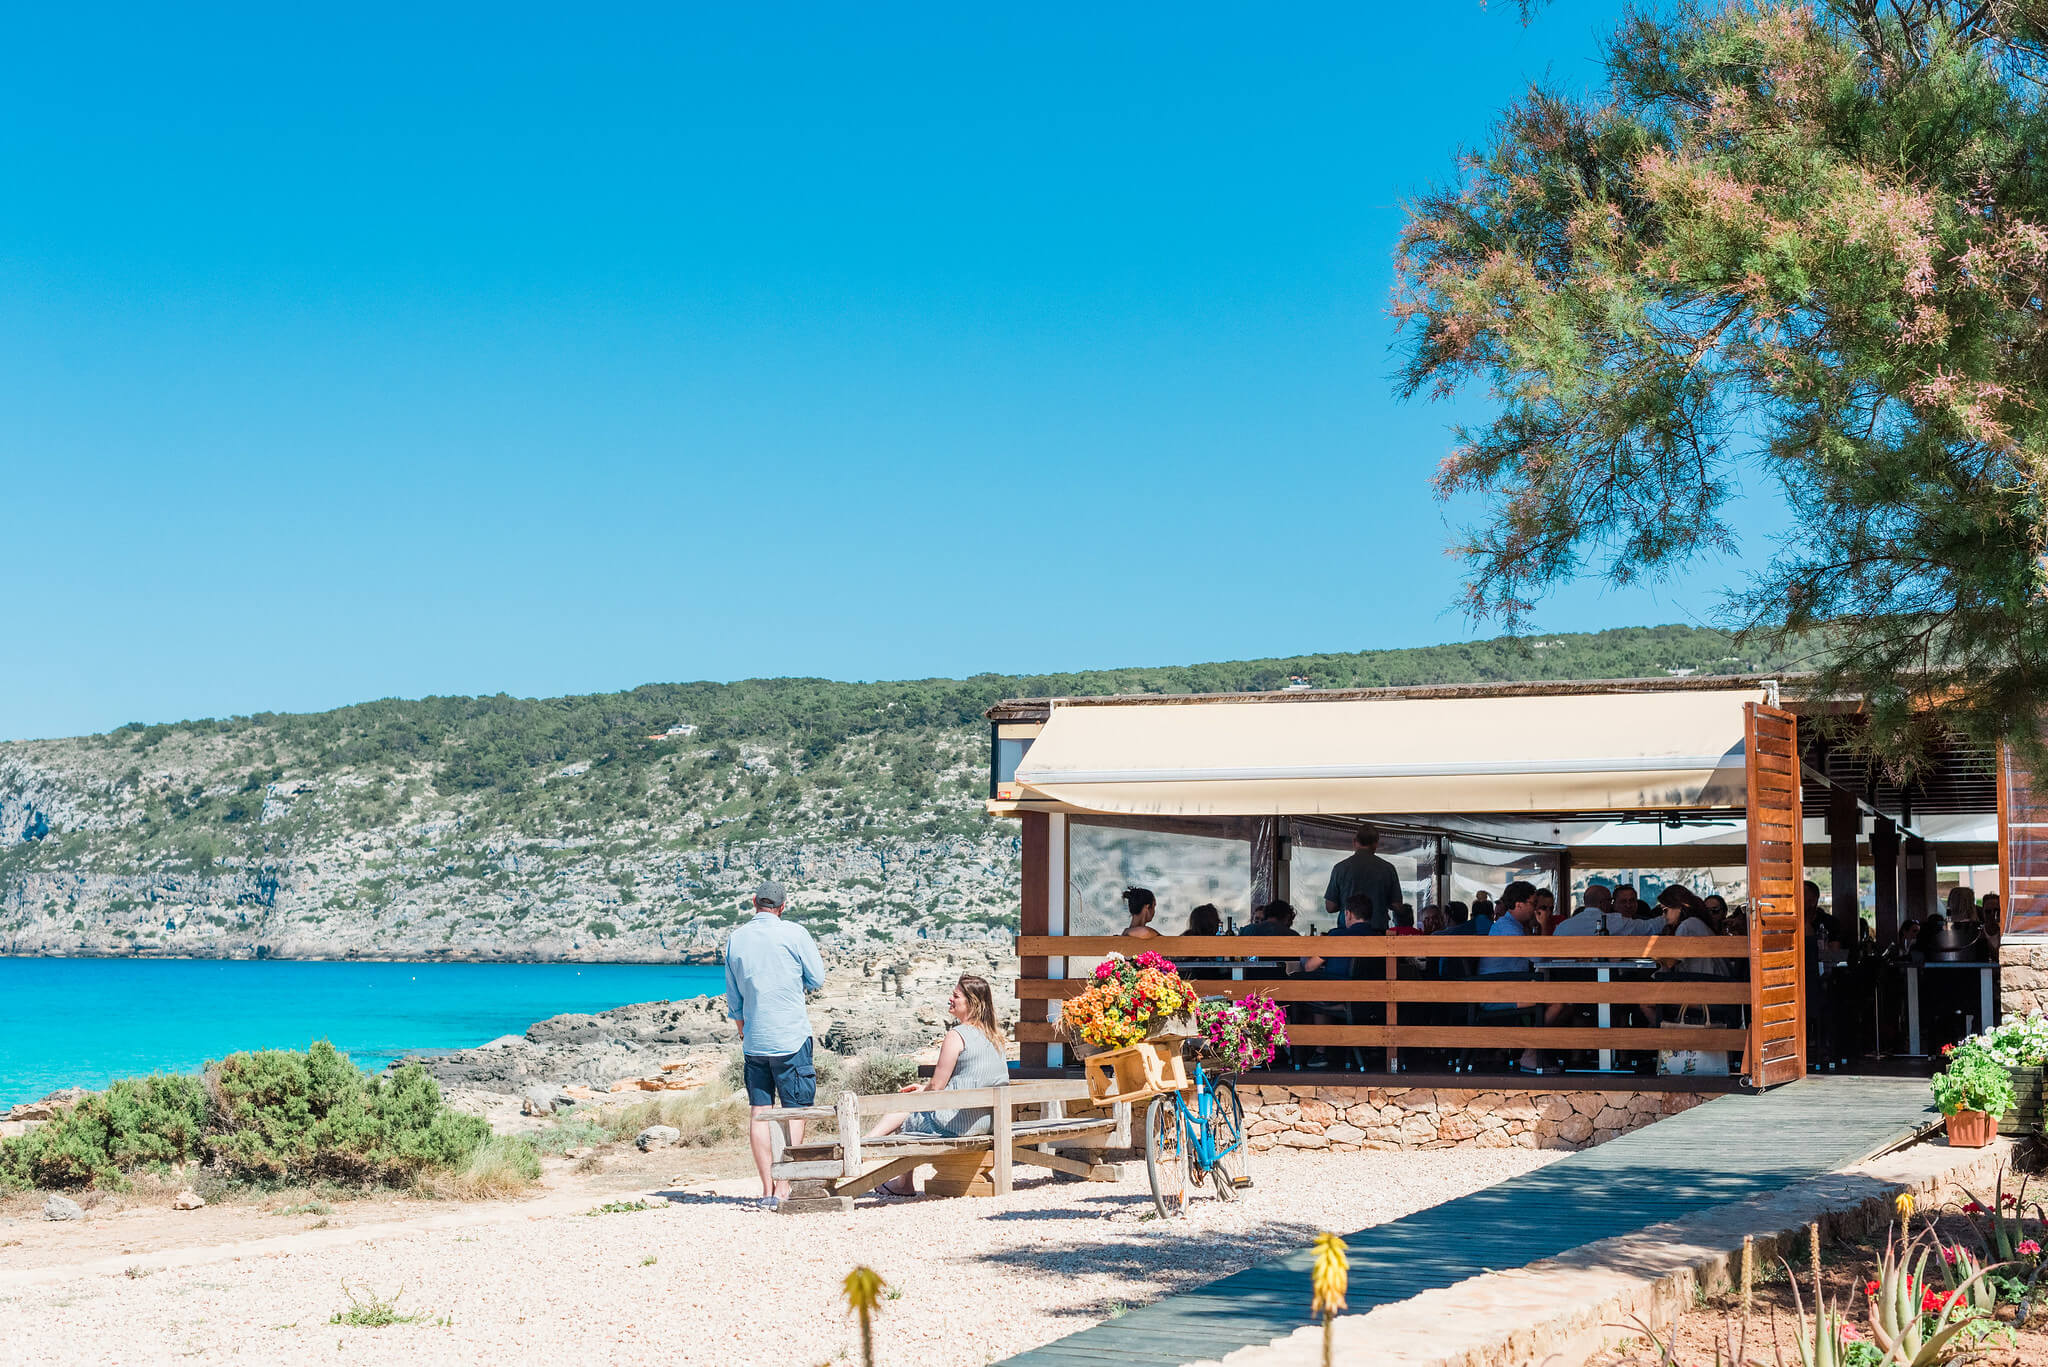 https://www.white-ibiza.com/wp-content/uploads/2020/03/formentera-beach-restaurants-es-calo-2020-04.jpg